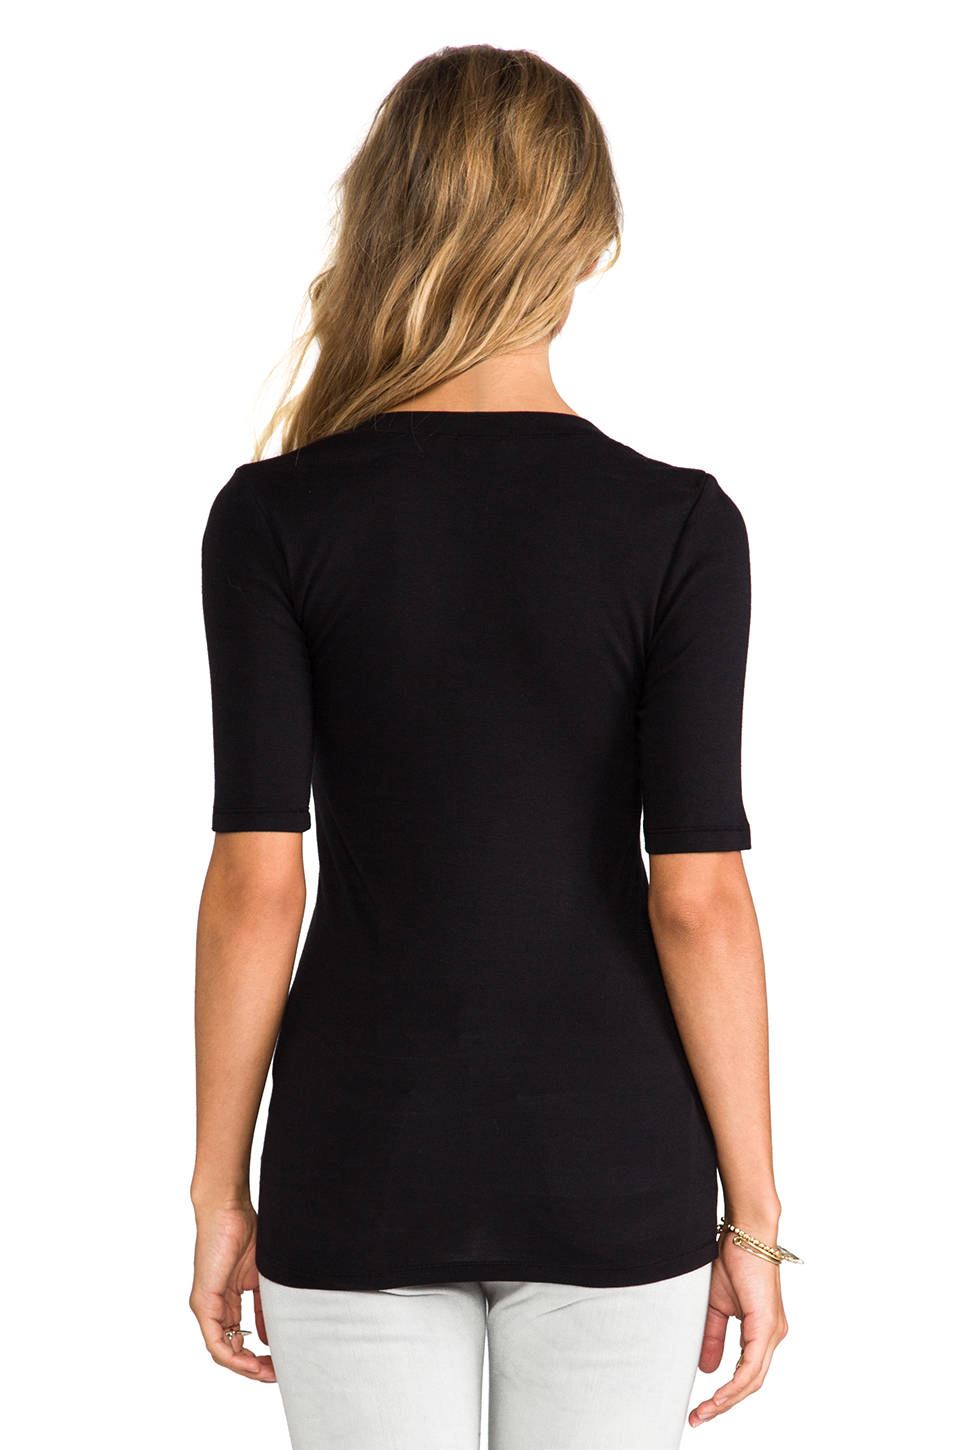 Splendid 1x1 V Neck in Black